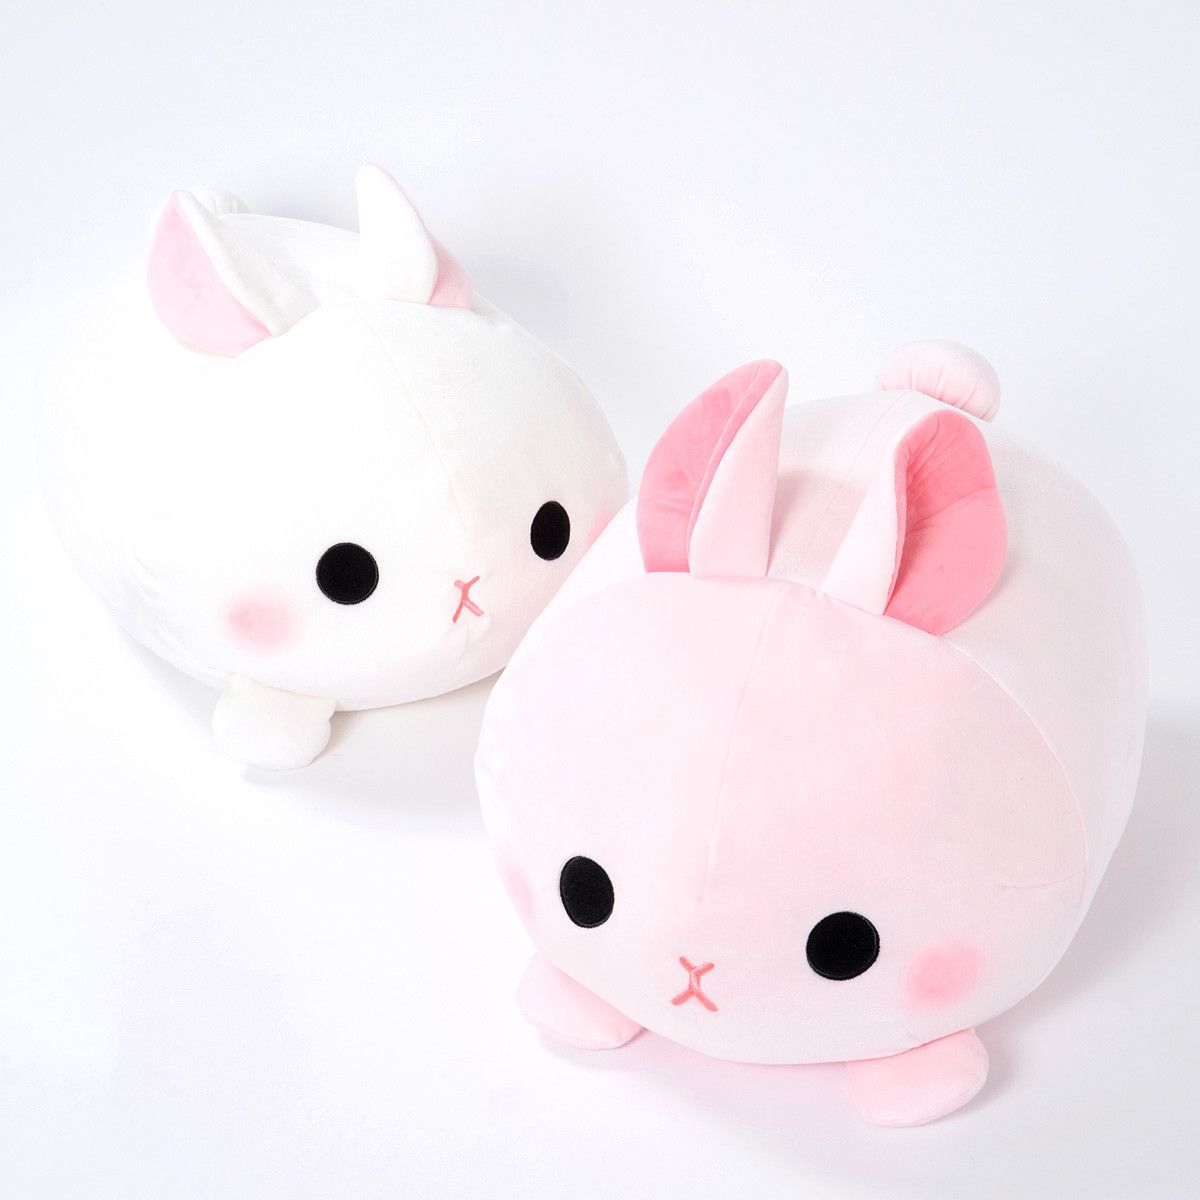 """These bunbuns are so soft that you'll want to hold them forever!  When hugged, they feel quite light and springy even though they're well stuffed. Choose between the pink peach colored Momo-pyon bunny or snow white Yuki-pyon bunny. Both have their cute little feet splayed out beneath them, perky ears, embroidered expressions, and blushed cheeks. ♥ Their big size (10.6"""" x 11.8"""" x 17.7&quo... #tokyootakumode #plushie"""